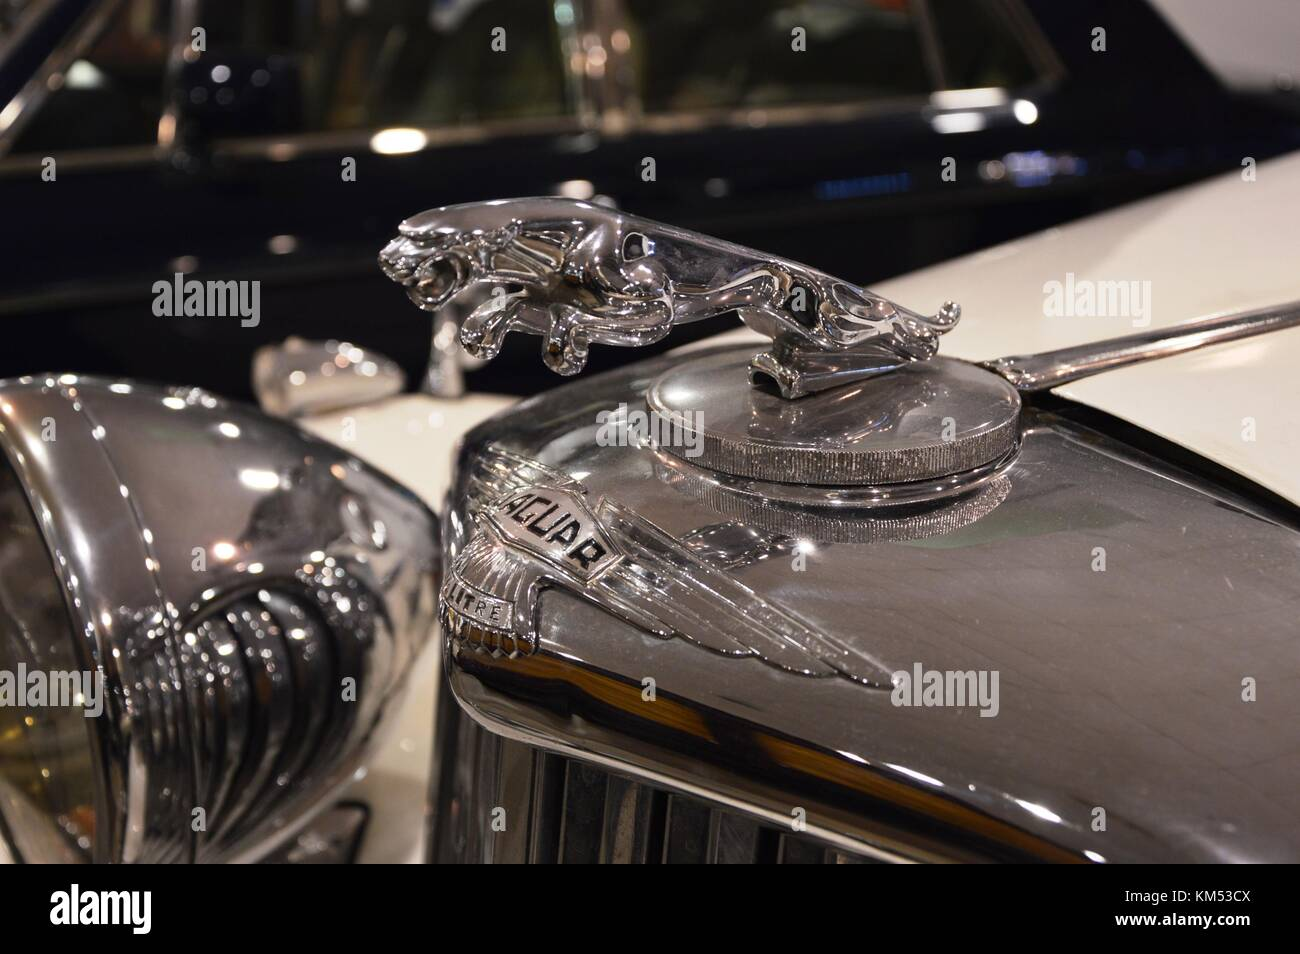 1954 Jaguar D Type Stock Photos & 1954 Jaguar D Type Stock ...